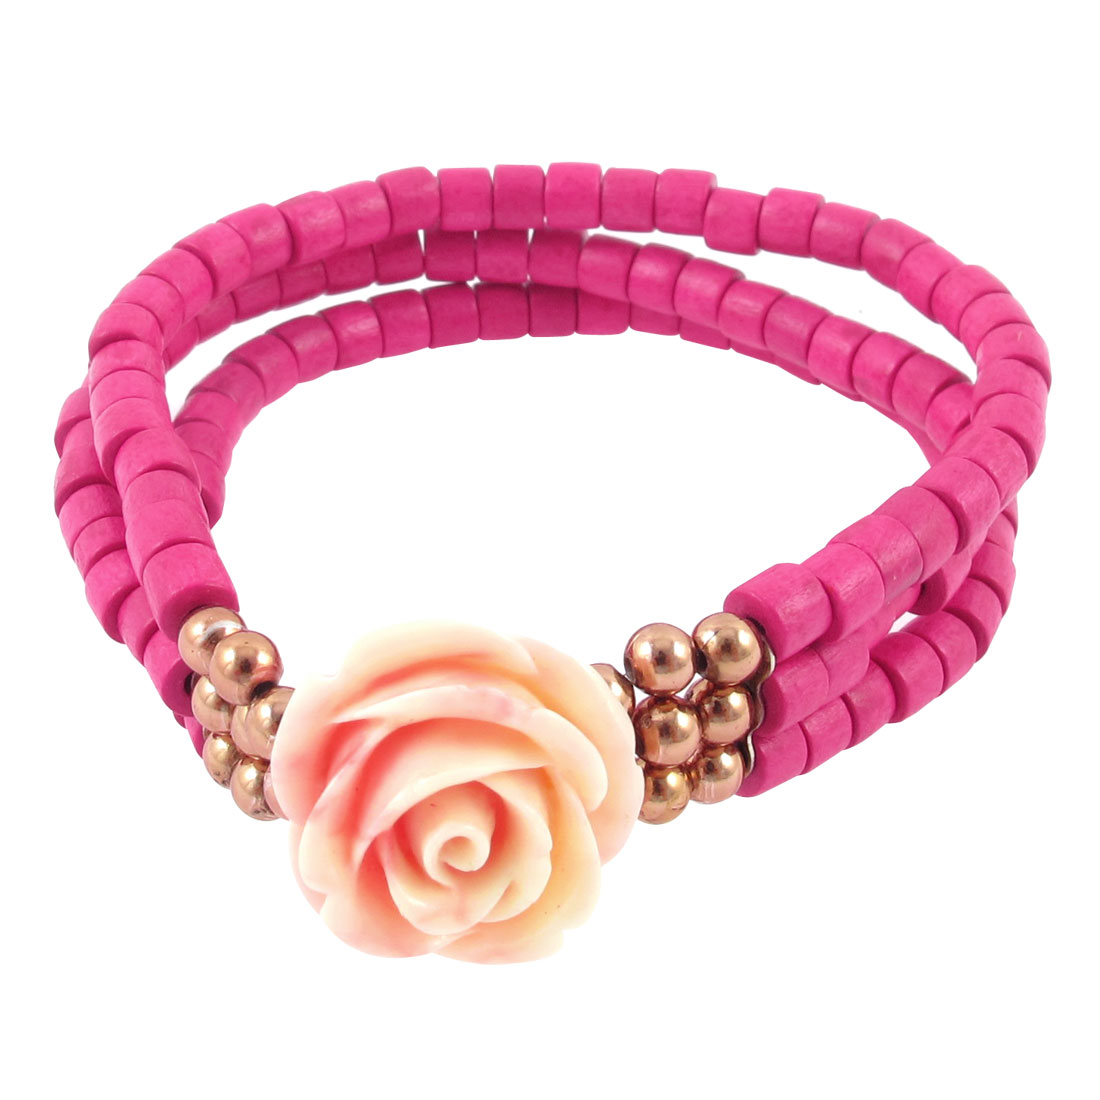 Flower Detail Stretchy Beaded Layered Bracelet Jewelry Finding Gift Fuchsia